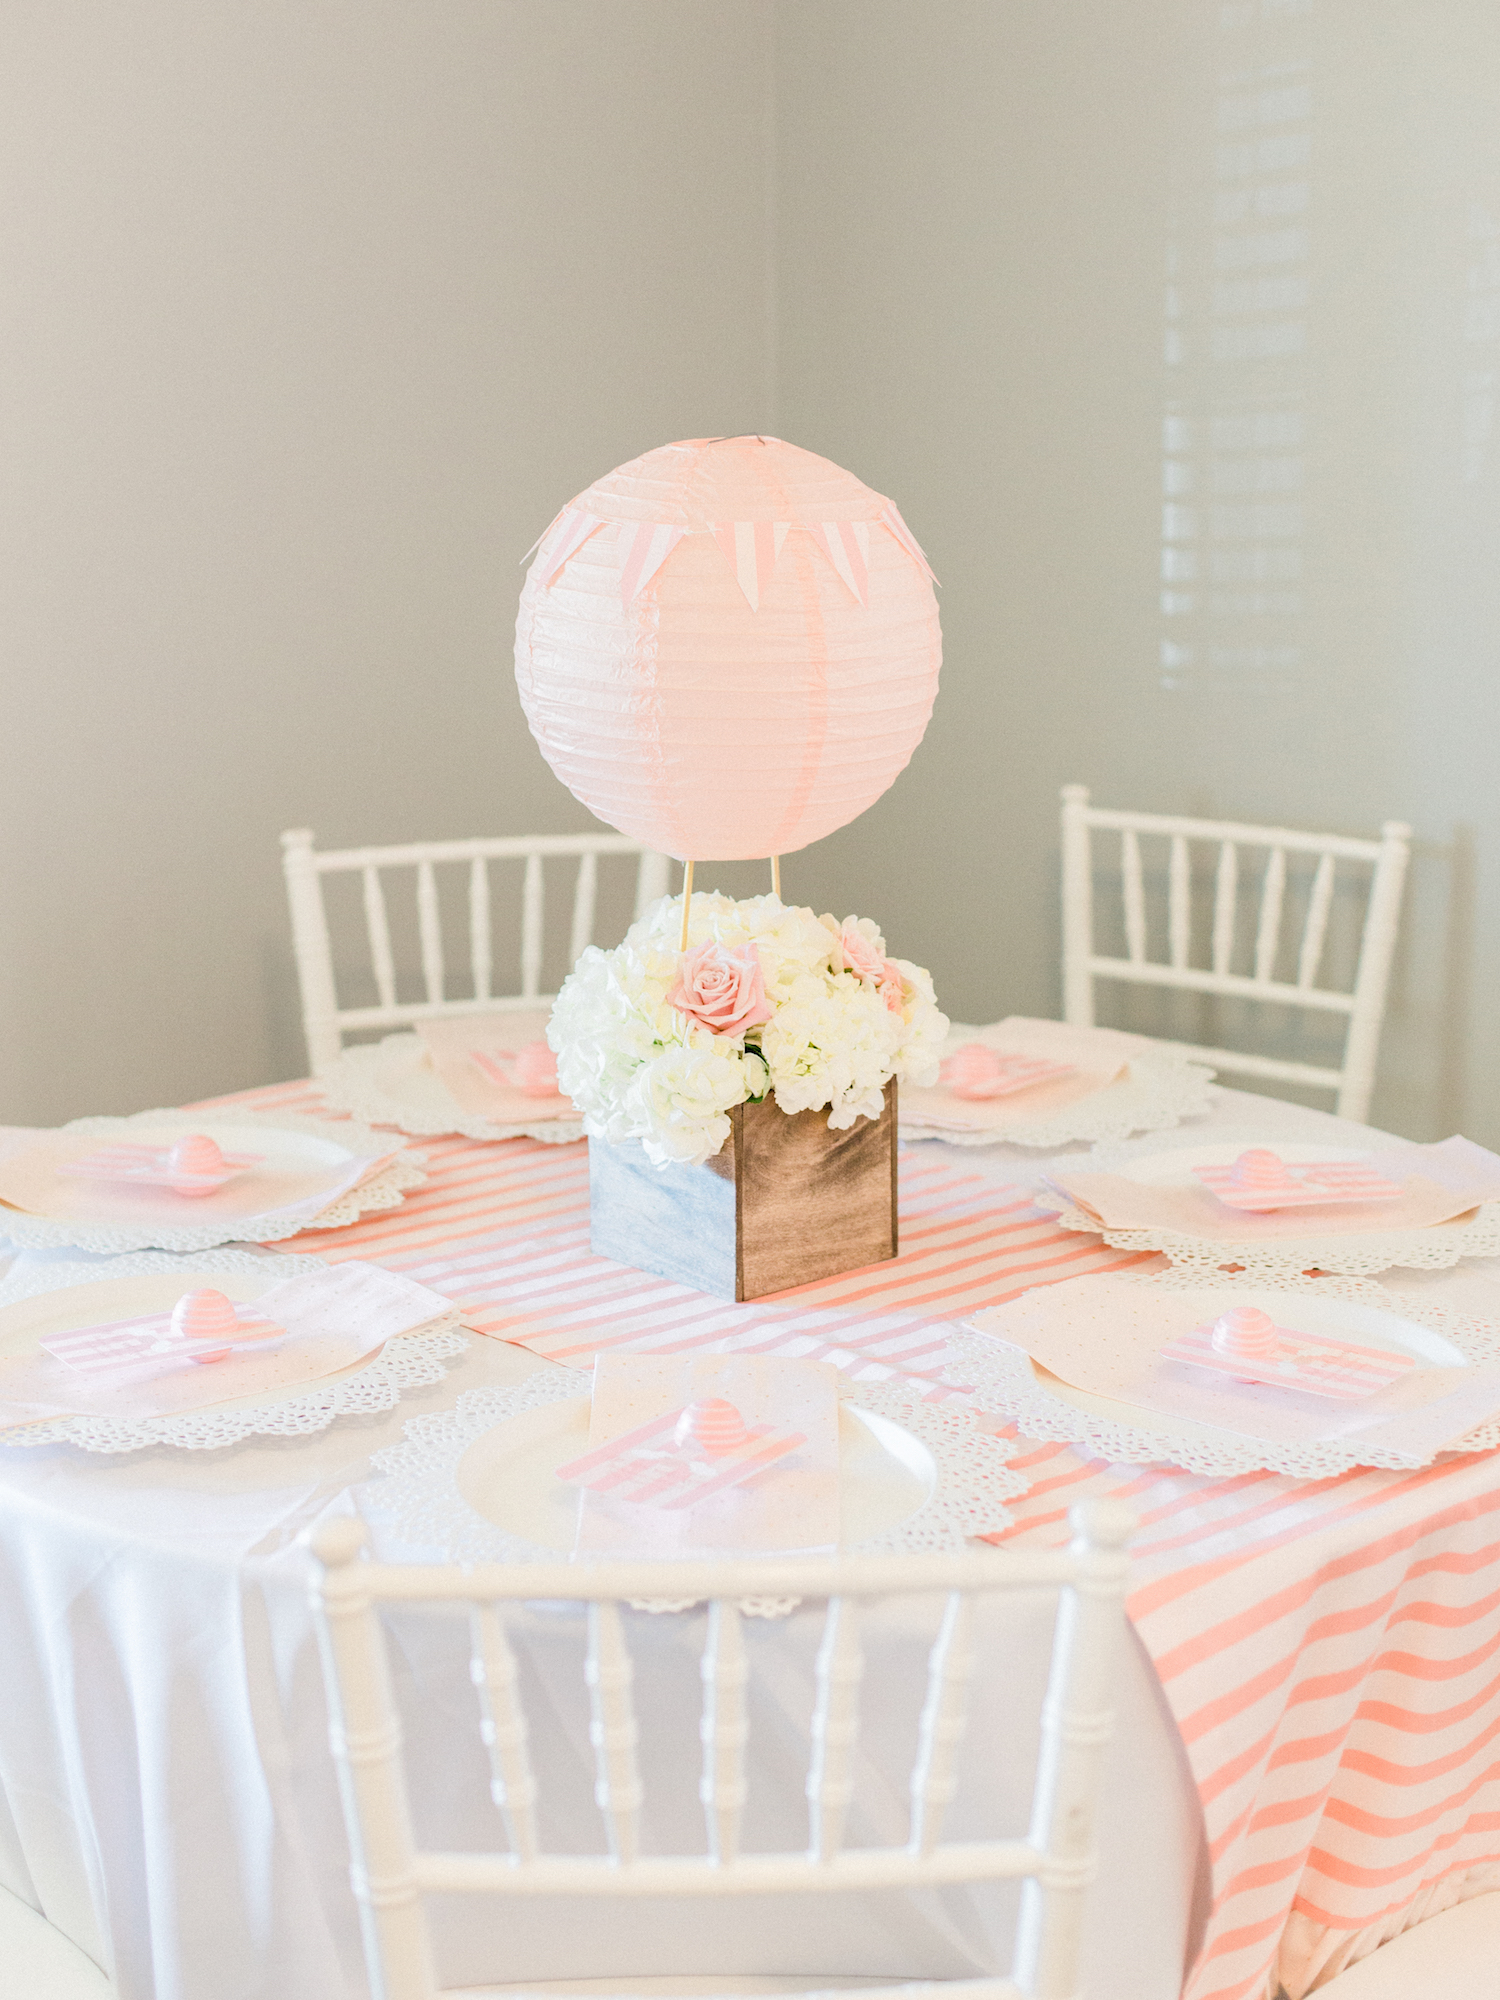 Hot air balloon floral centerpiece. Pink and white baby shower decor. White chiavari chairs.